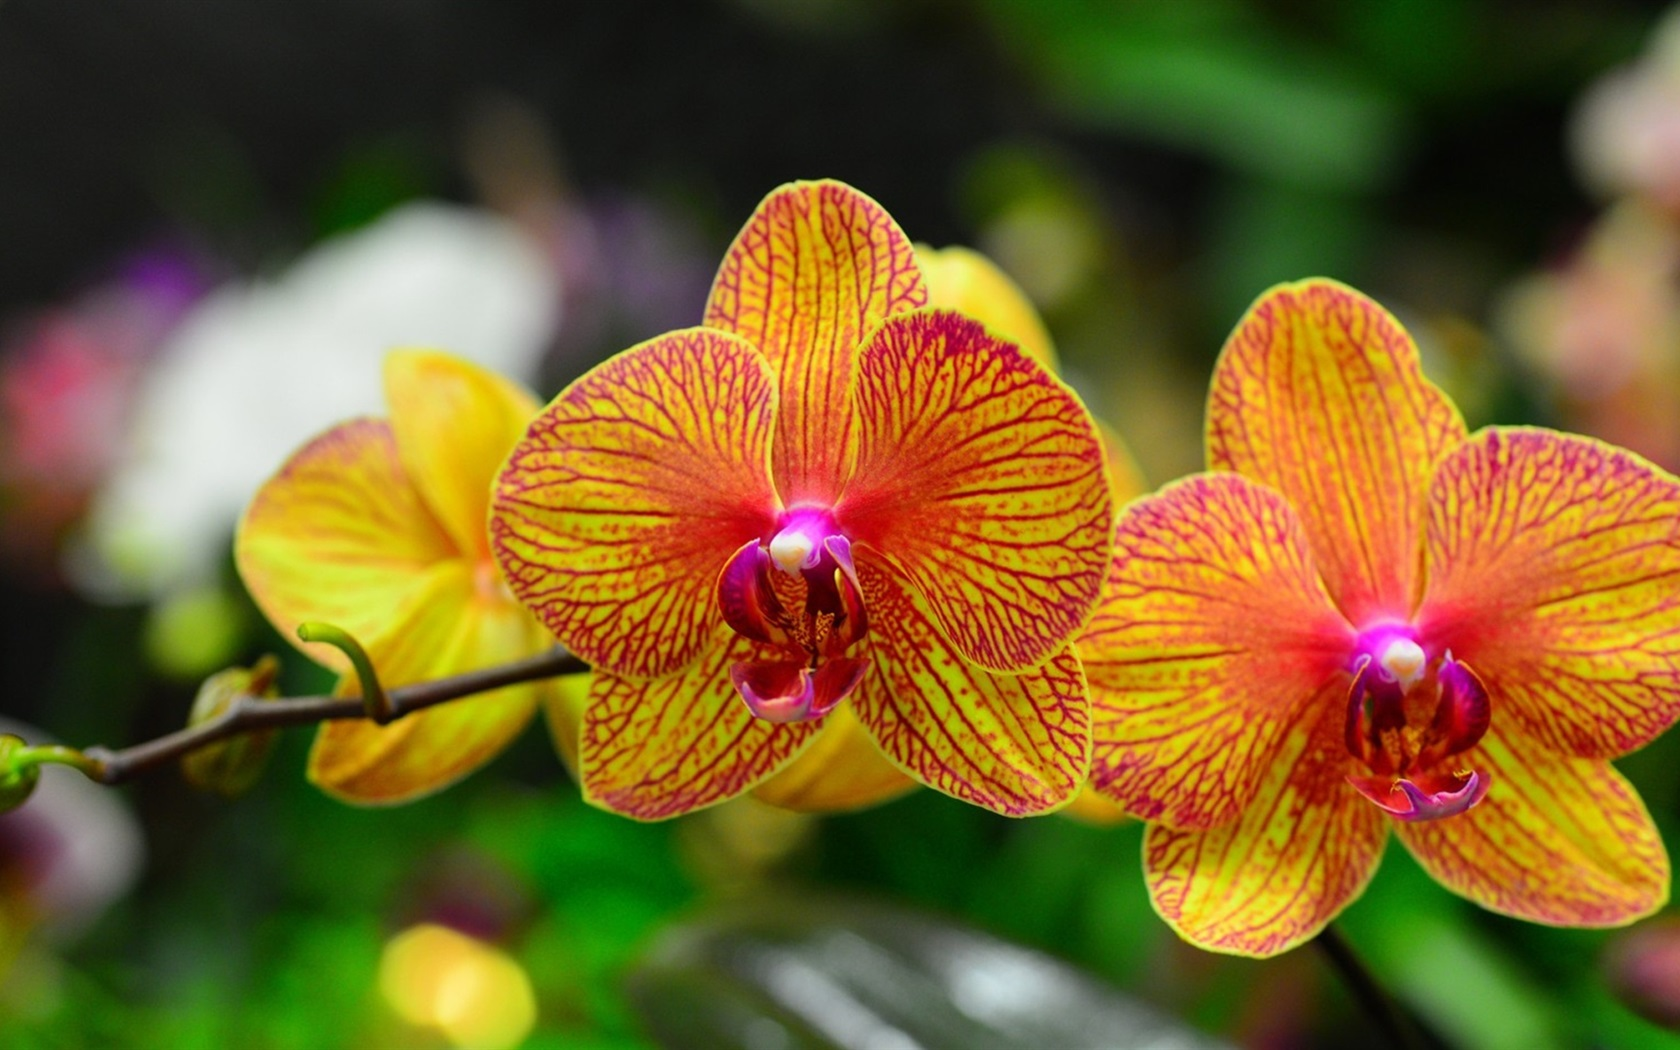 Shenzhen Nongke Orchid Wallpaper For Laptop